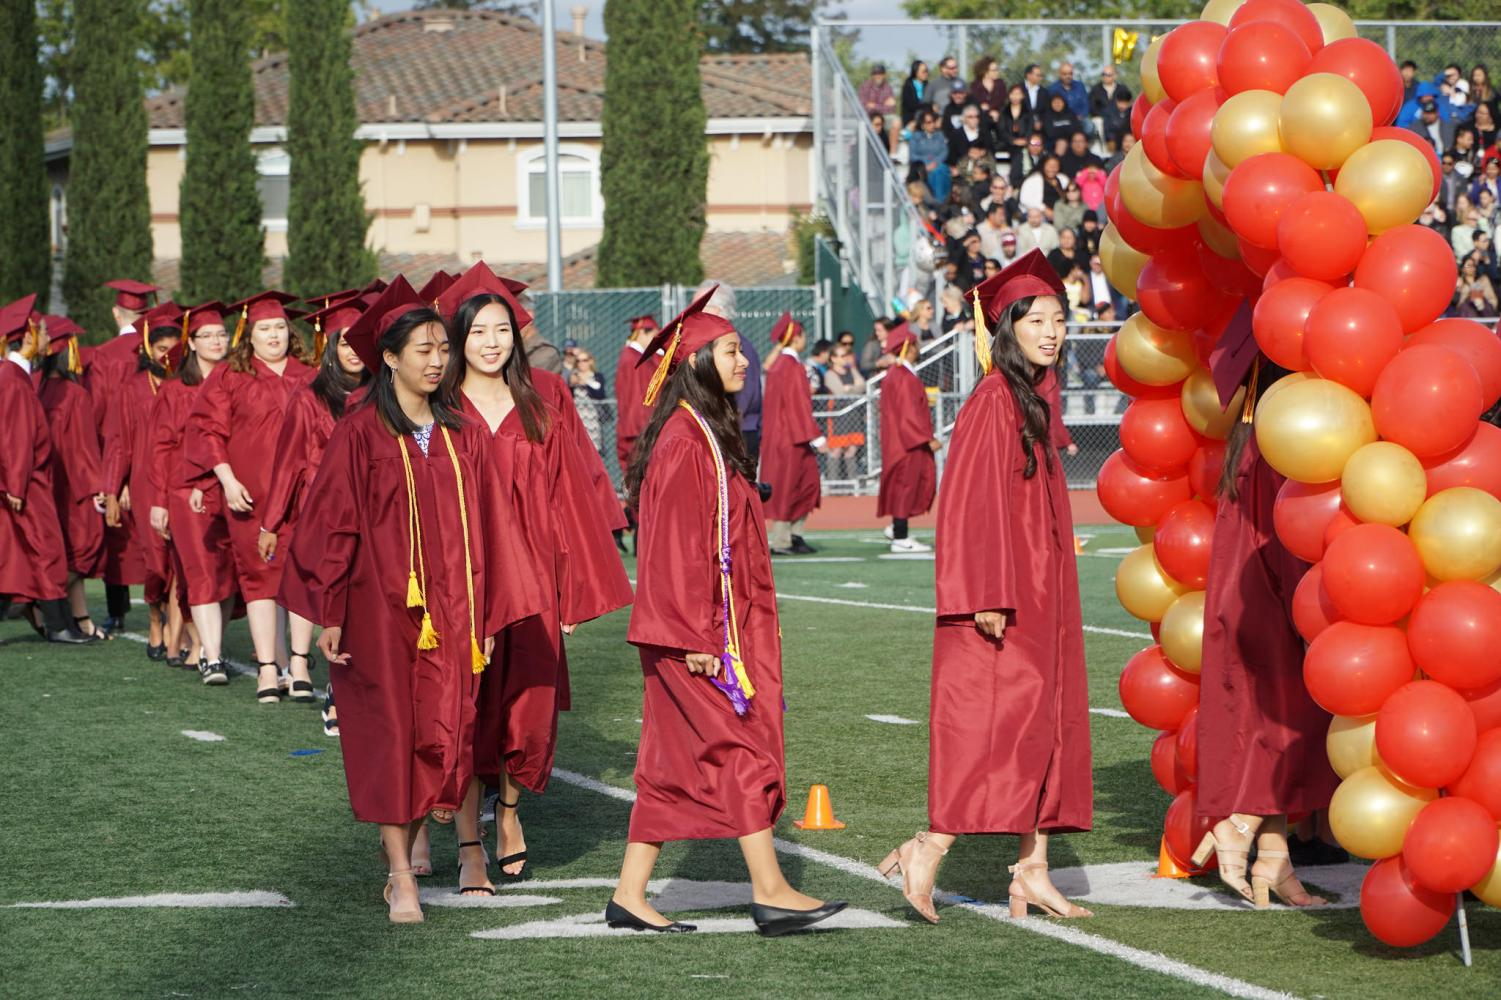 Graduates walk through balloon arch prior to taking their seat for the ceremony.